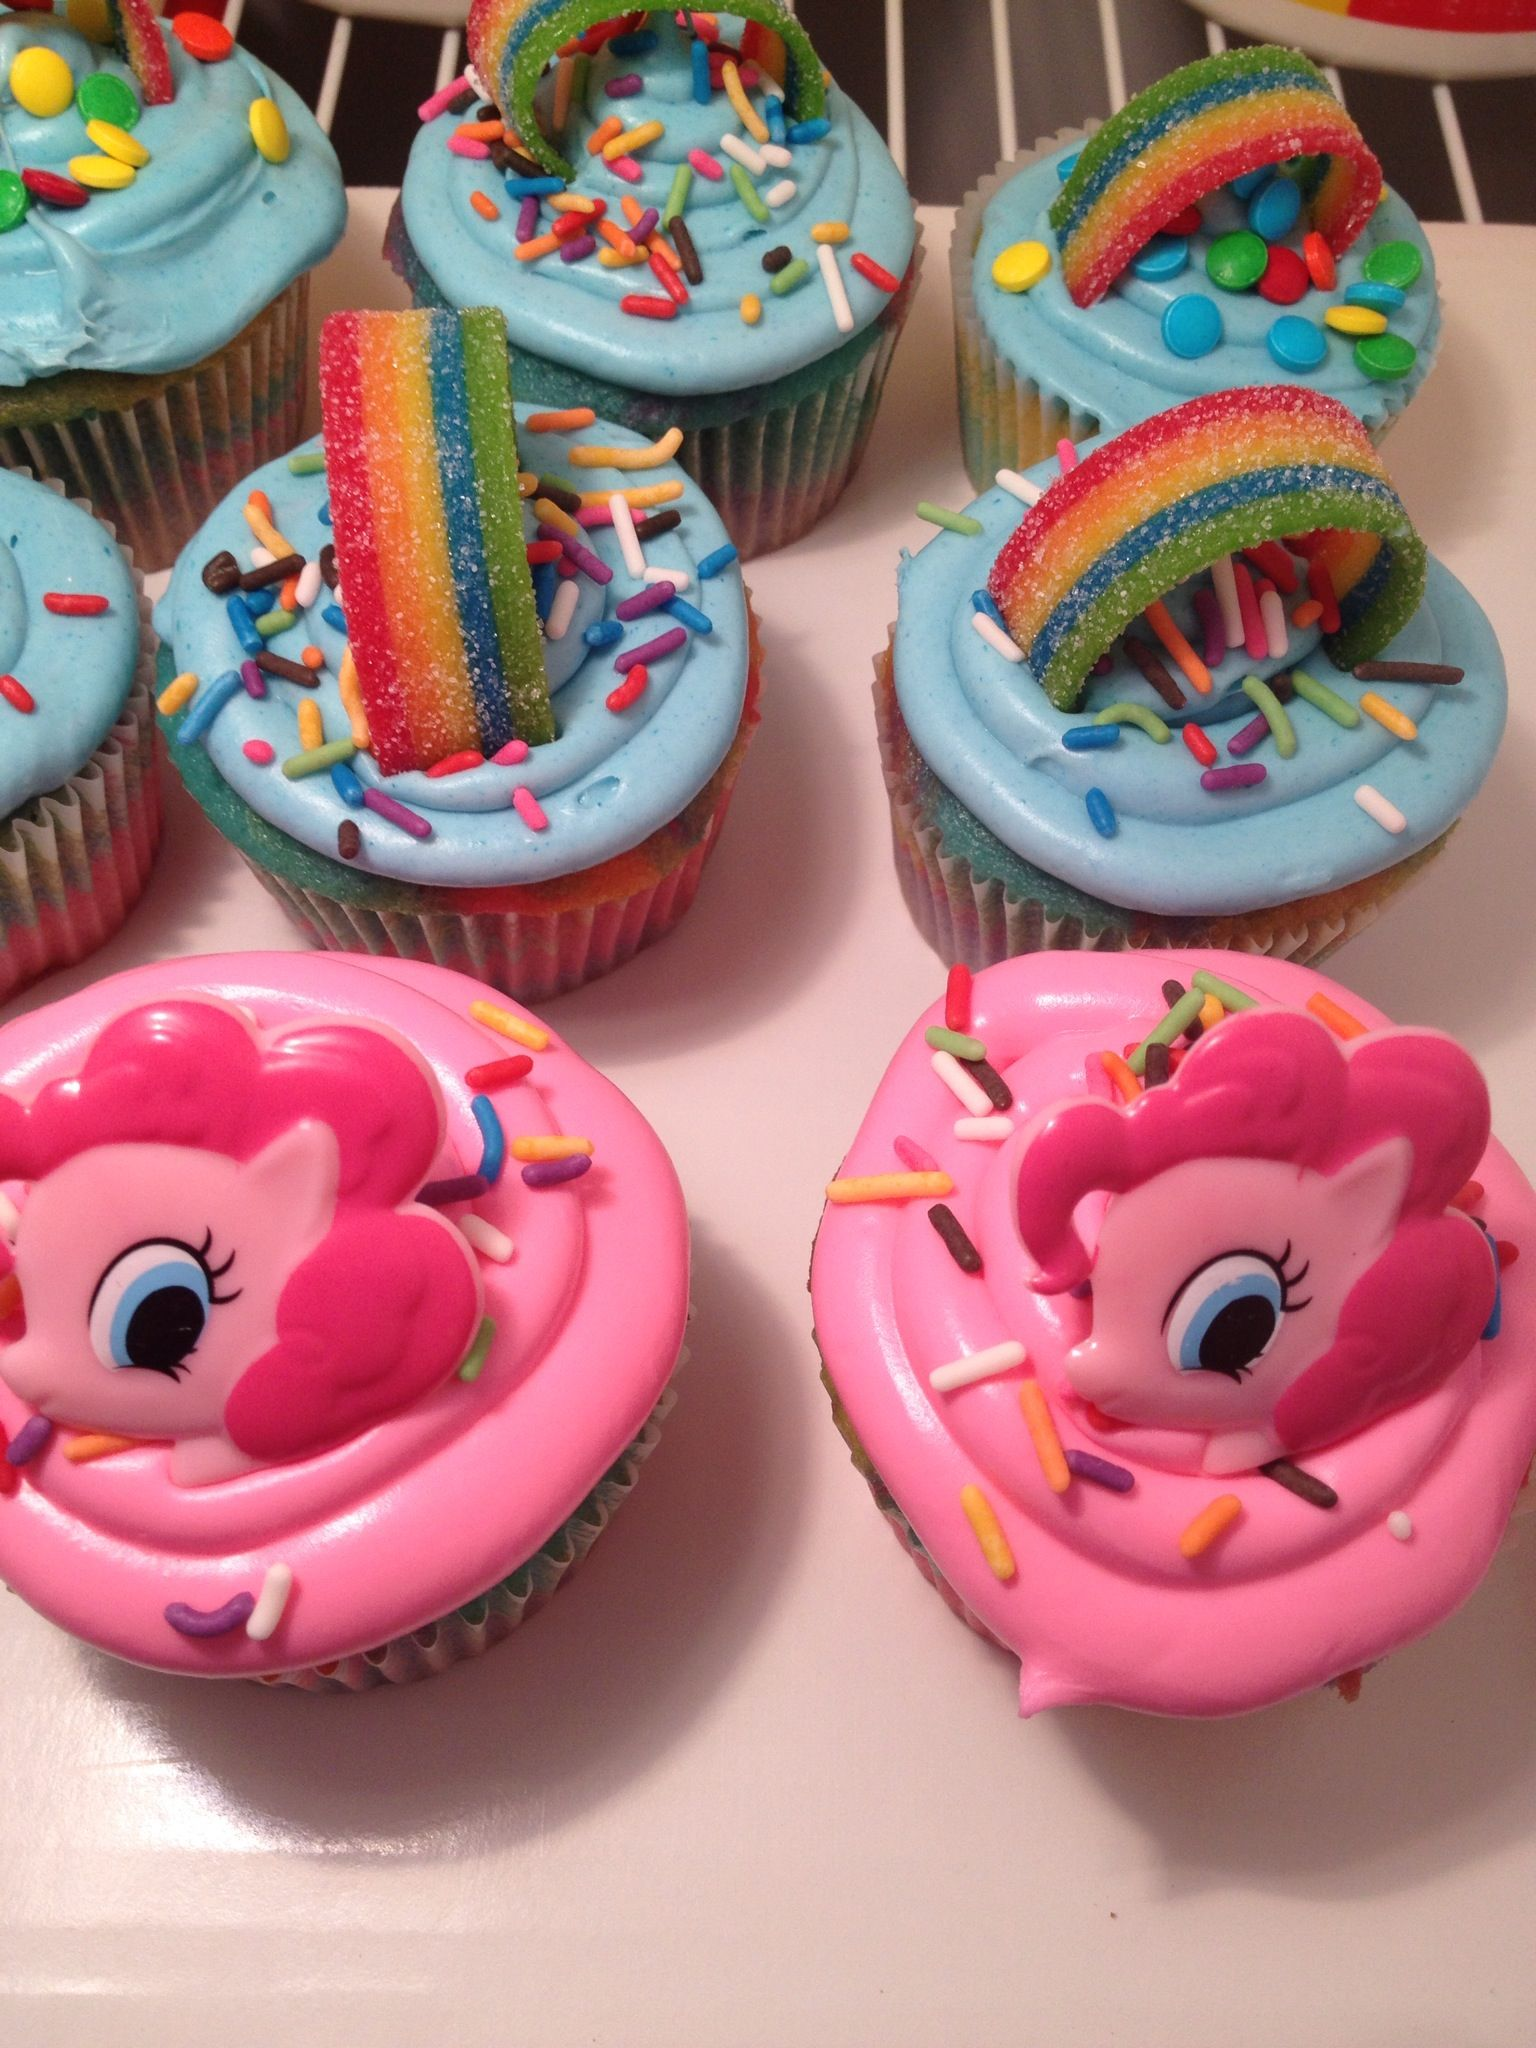 My little pony birthday party crafts - My Little Pony Birthday Cupcakes Ideas Previous Page Showing Pic Gallery For My